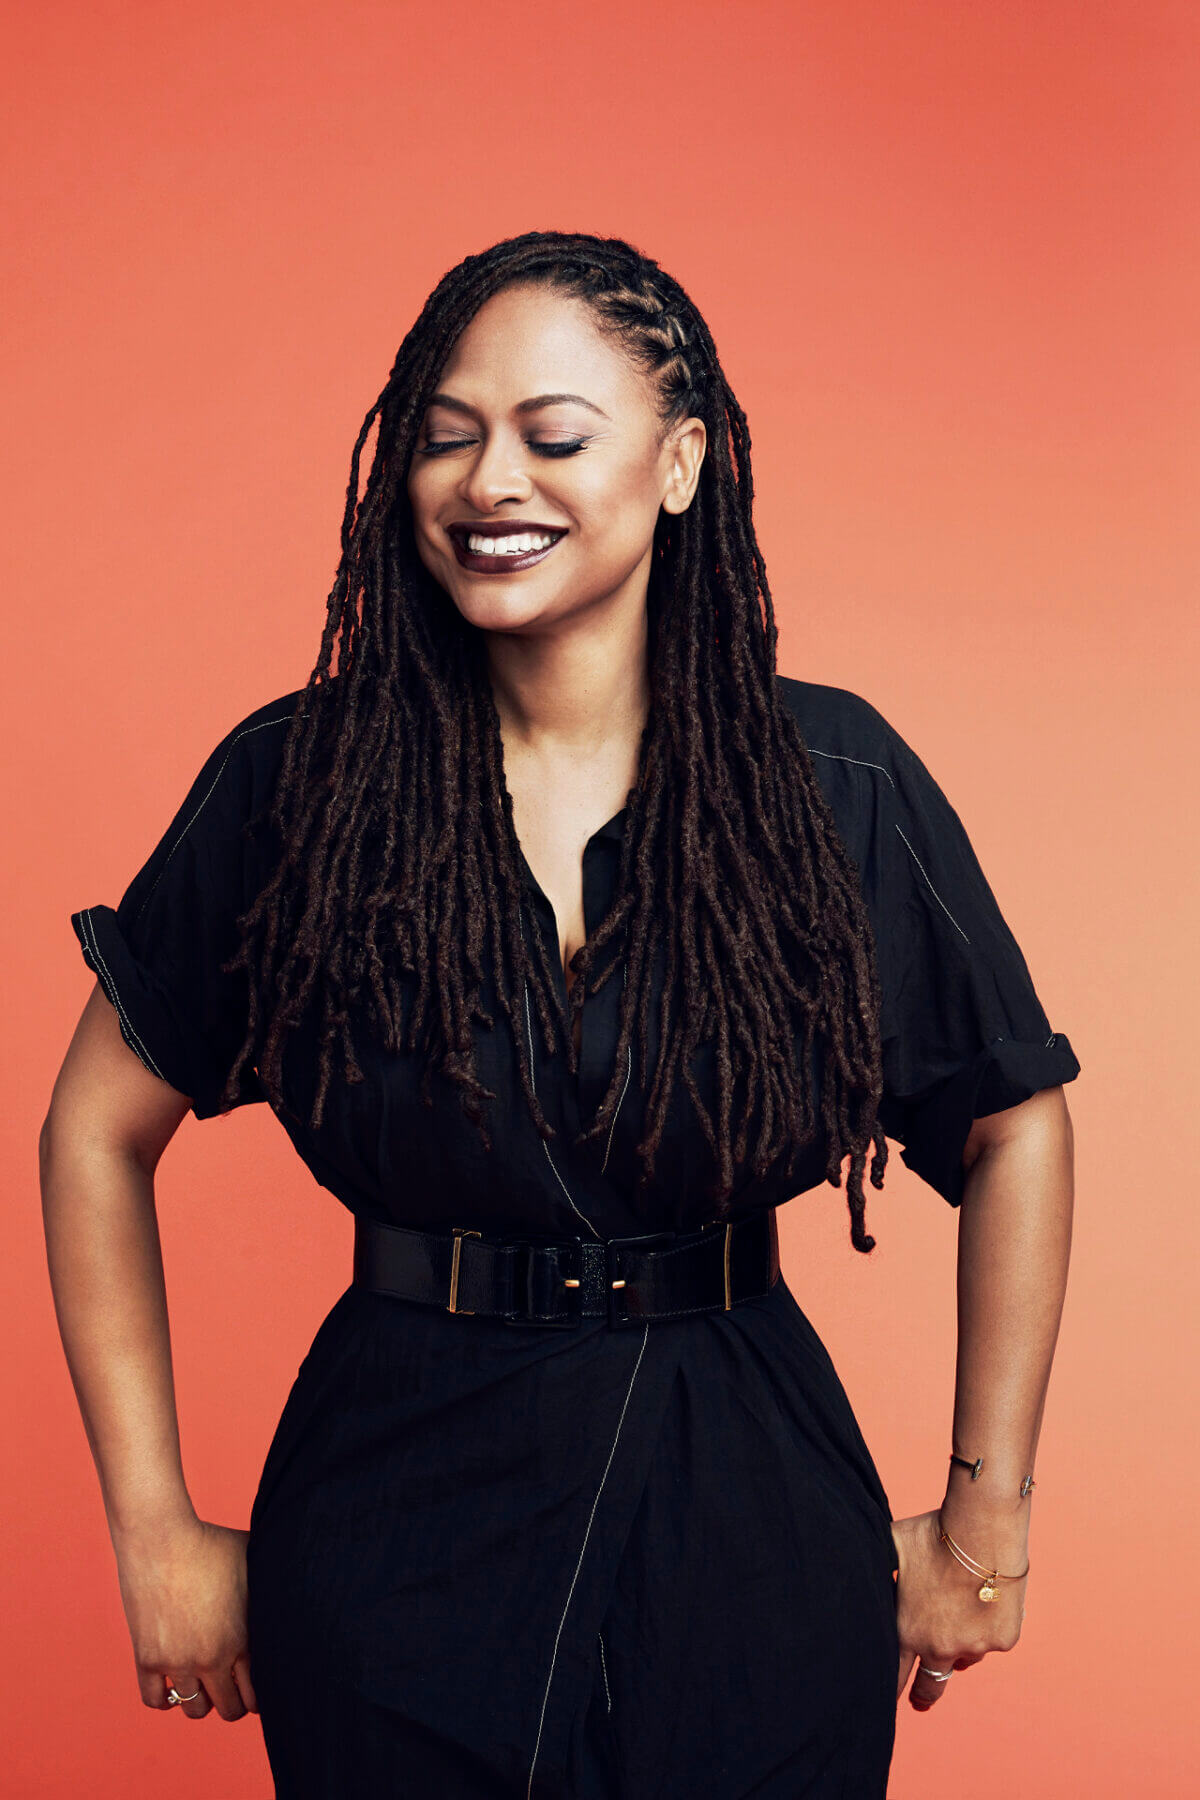 Director Ava DuVernay and Composer Quincy Jones Lead November Programming at the Smithsonian's National Museum of African American History and Culture